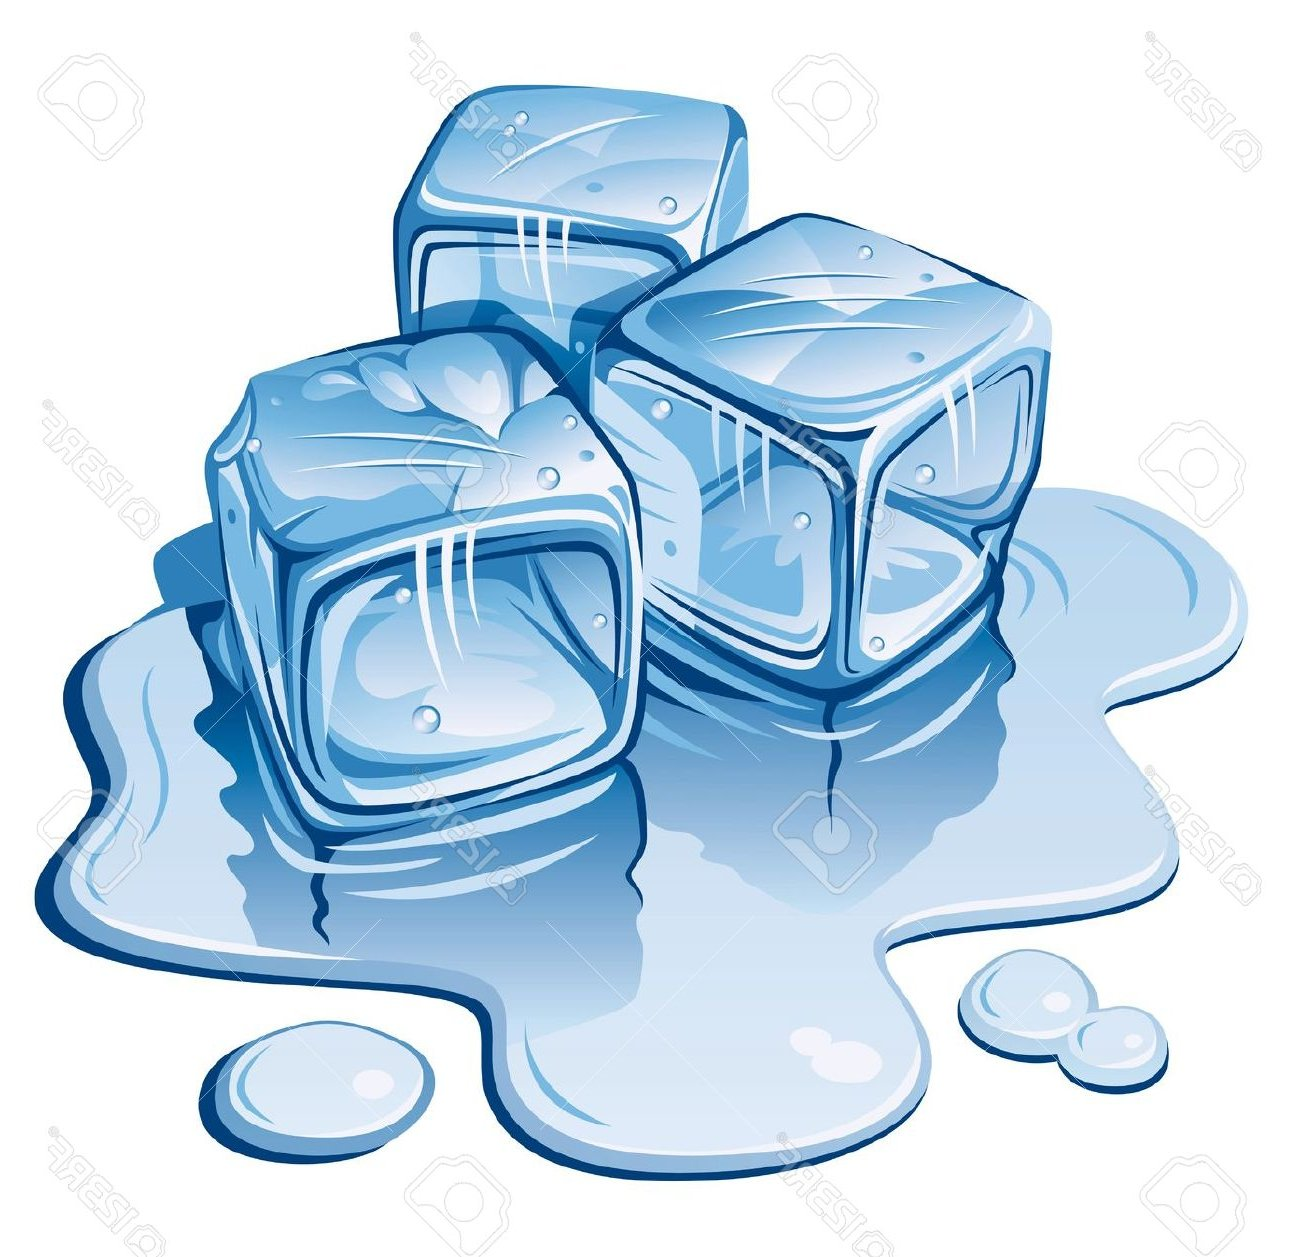 Ice cubes clipart 4 » Clipart Station.